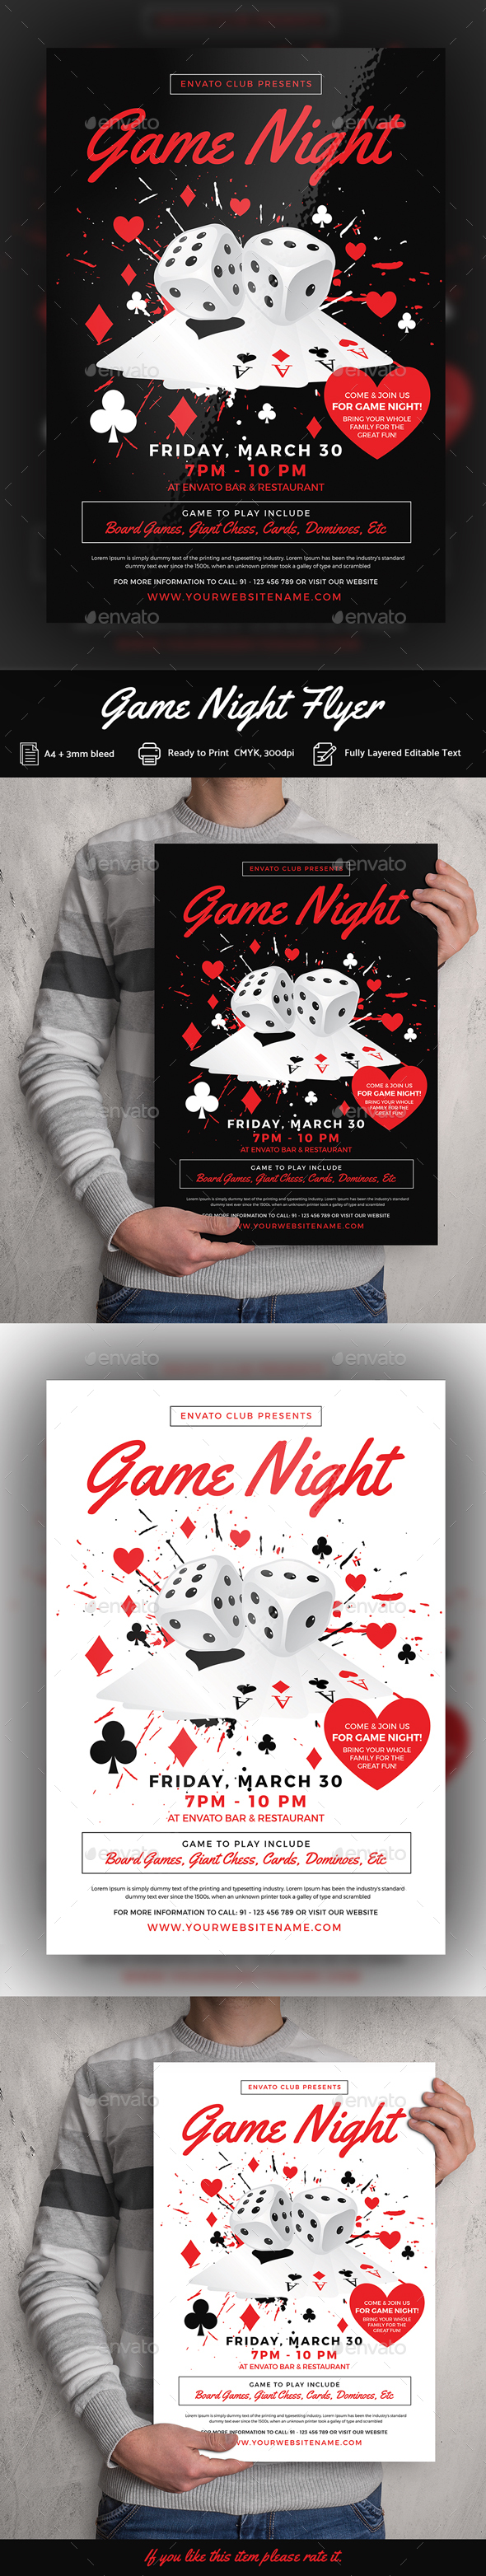 Game Night Flyer Template - Events Flyers